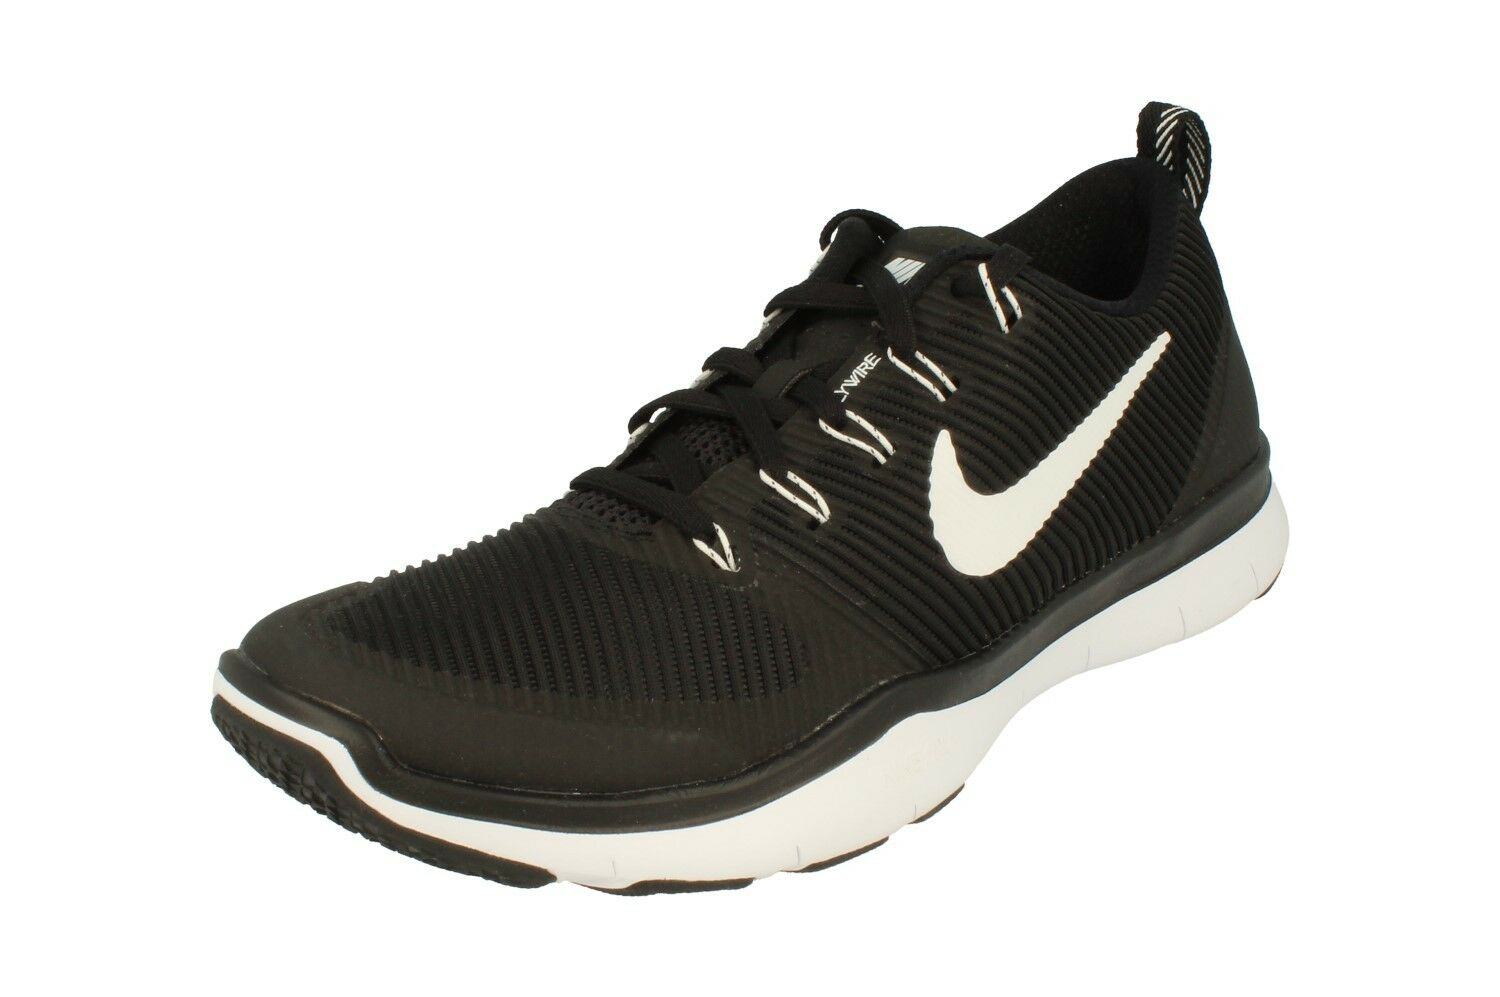 Nike Free Train Versatility Tb Mens Running Trainers 833257 Sneakers shoes 010